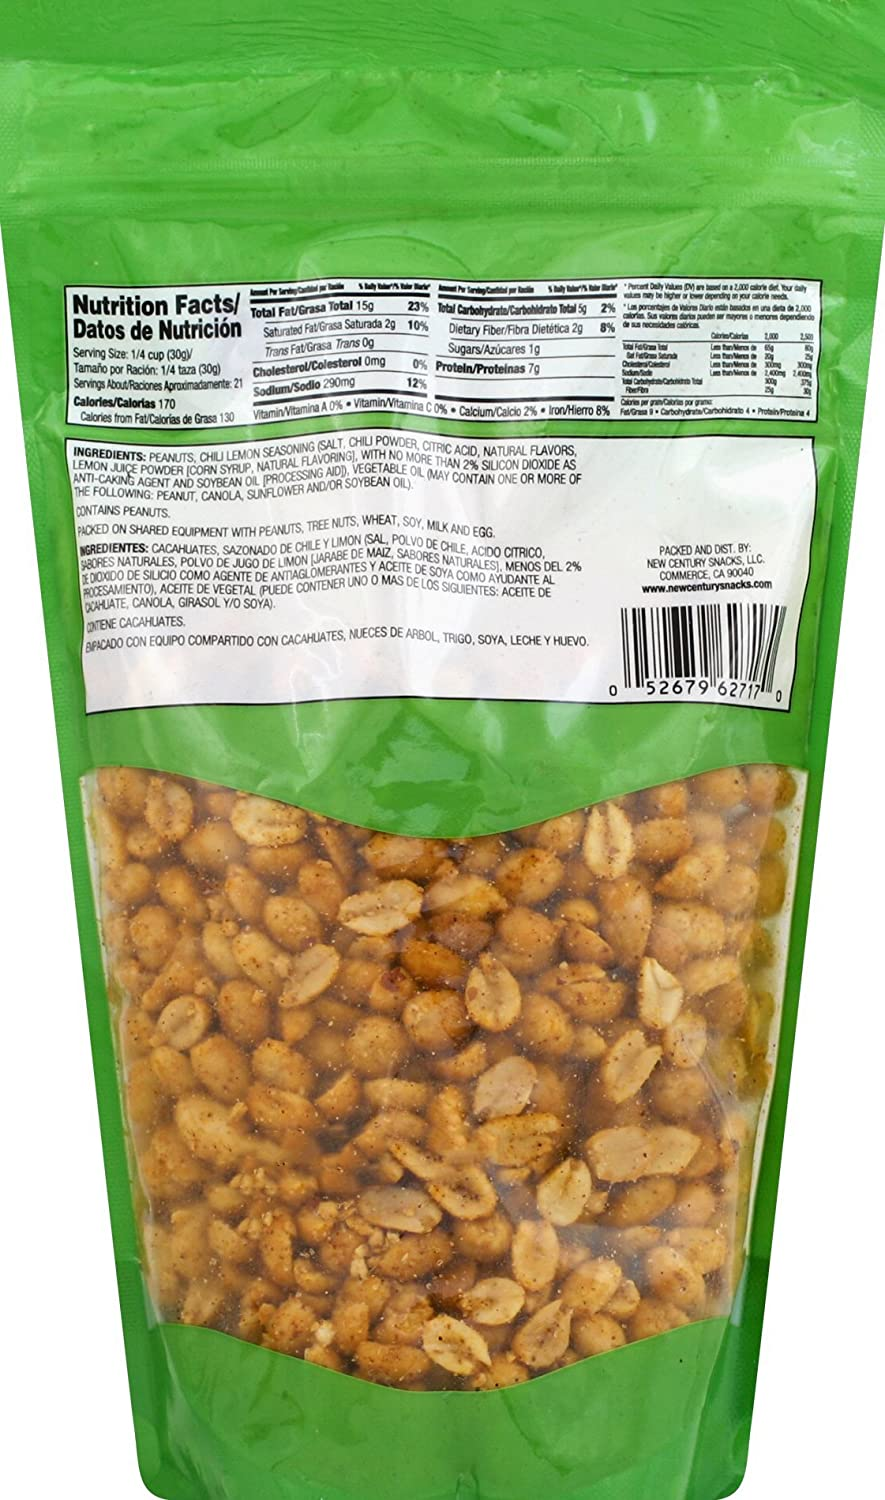 Amazon.com : Muncheros Chili Crunchy Peanuts, 4.5-Ounce, 12-Pack : Grocery & Gourmet Food